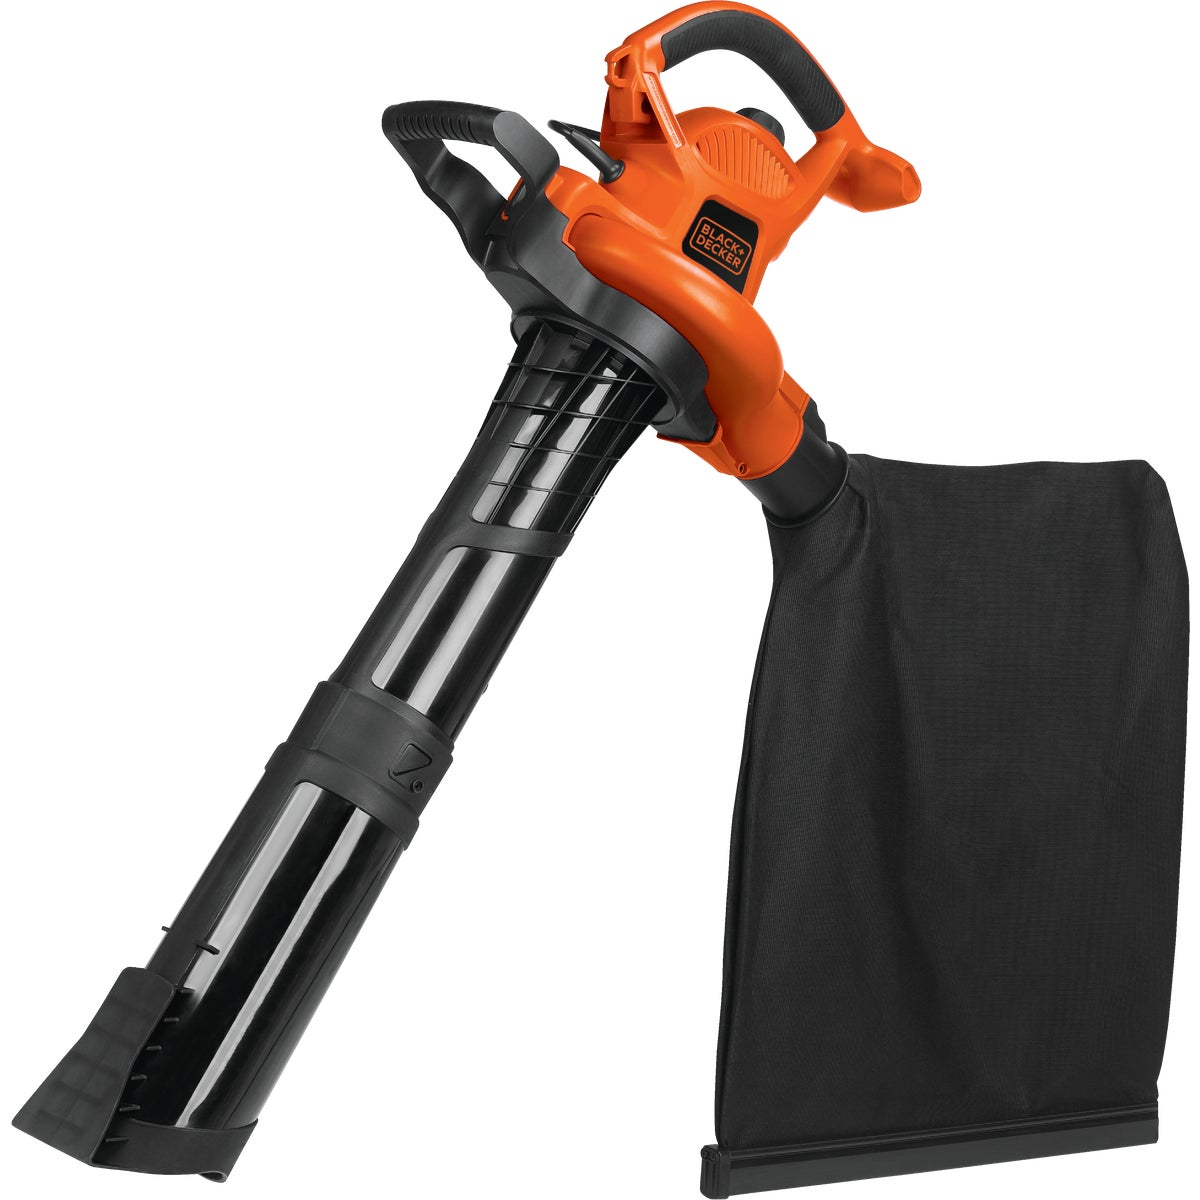 SUPER BLOWER/VAC - BV6000 by Black & Decker